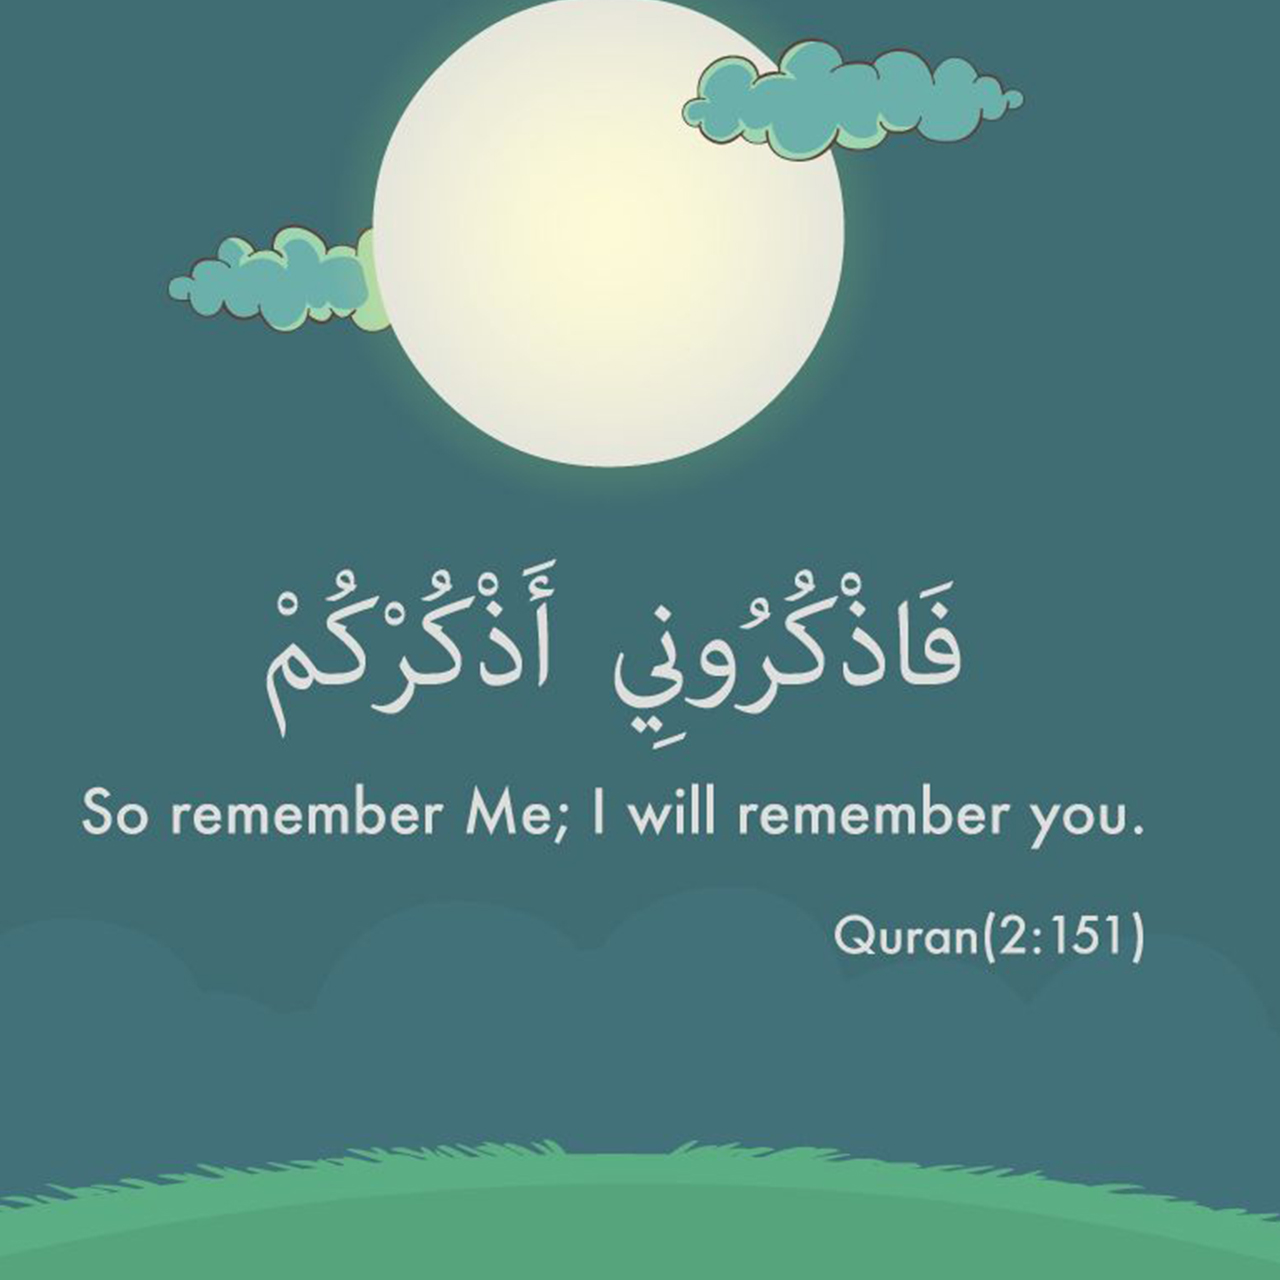 So remember me; I will remember you